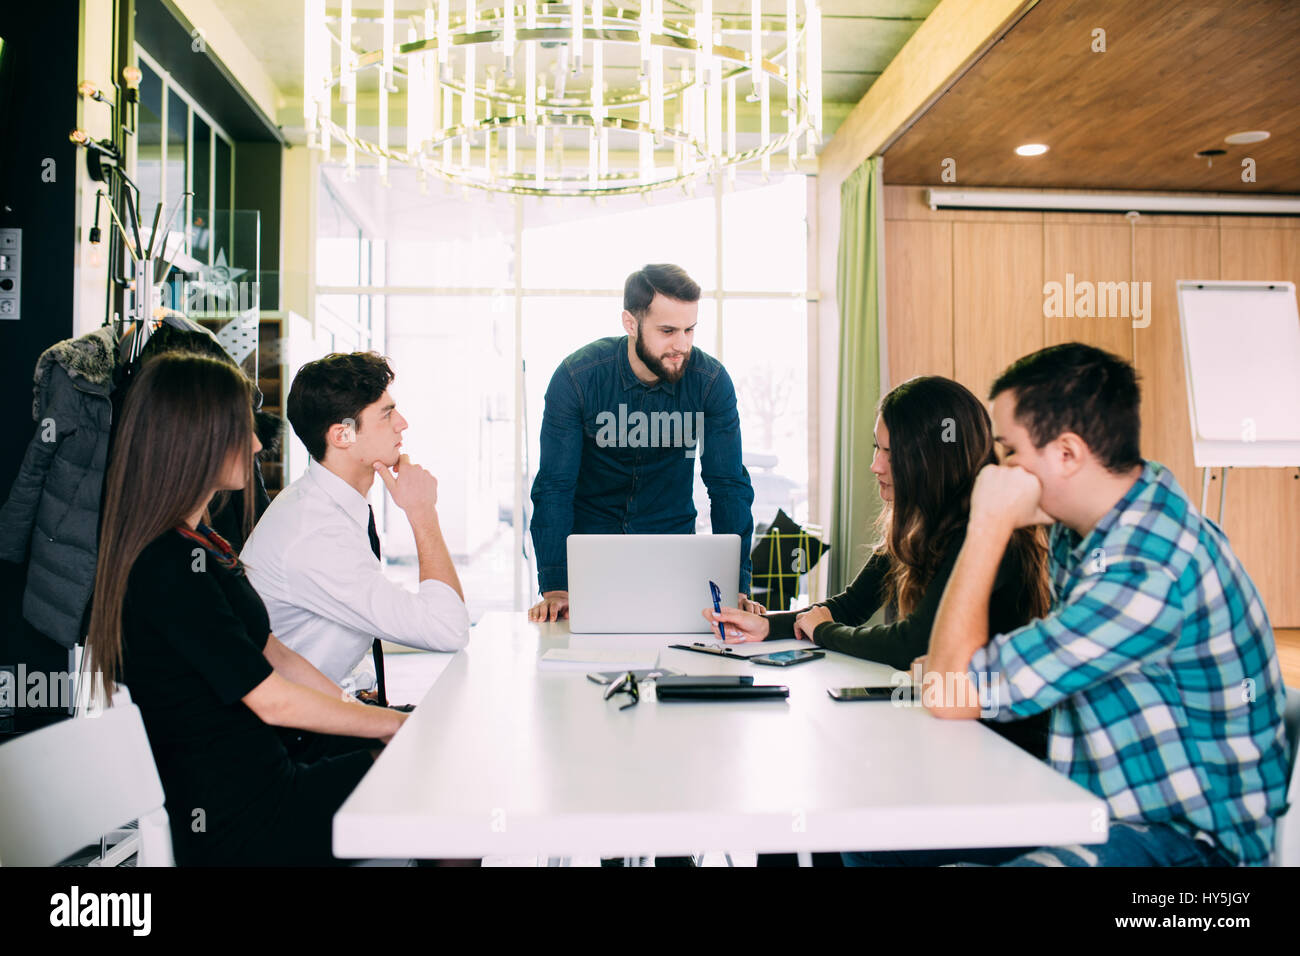 Young freelance team meeting at table discuss goals in modern office. Teamwork - Stock Image